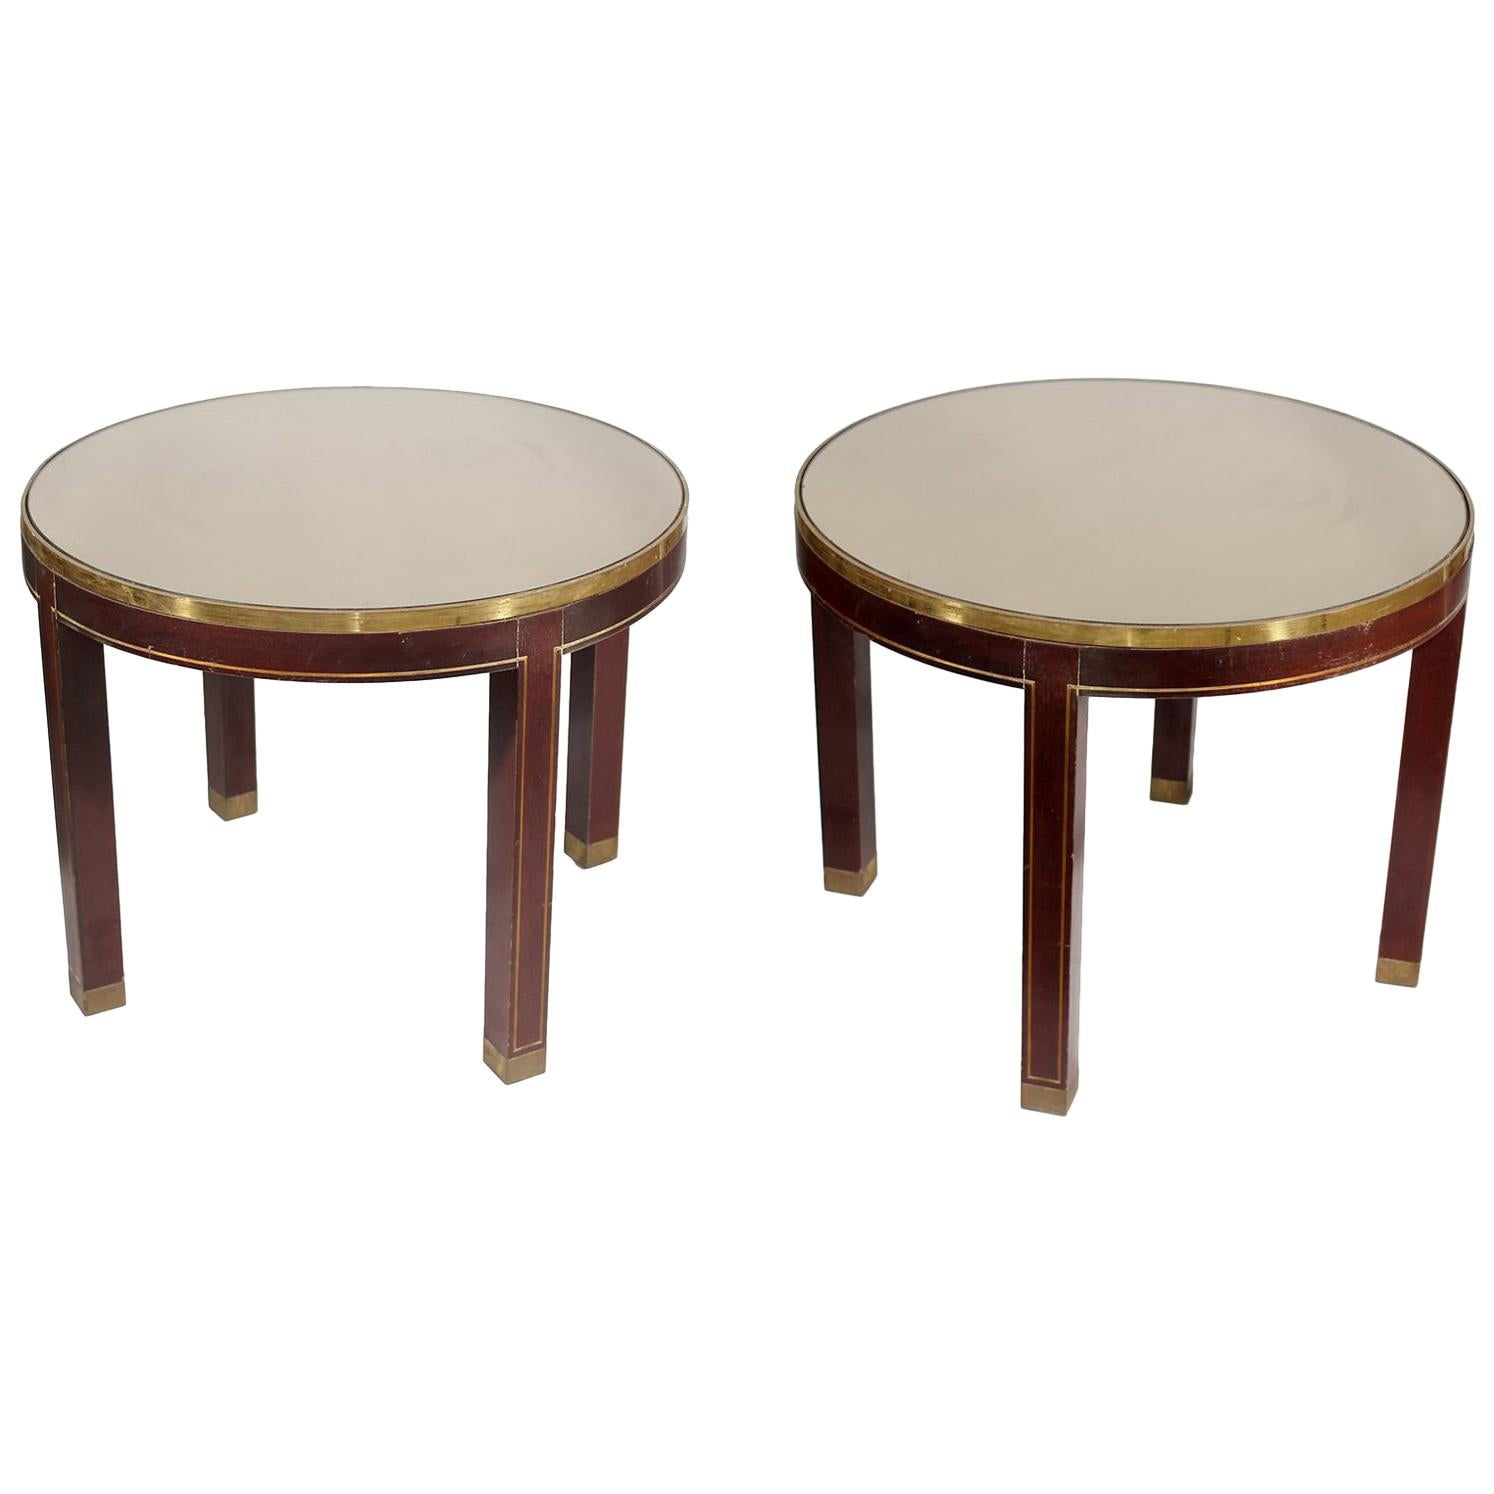 Spanish 1970s Pair of Round Mahogany Wood and Brass Side Tables